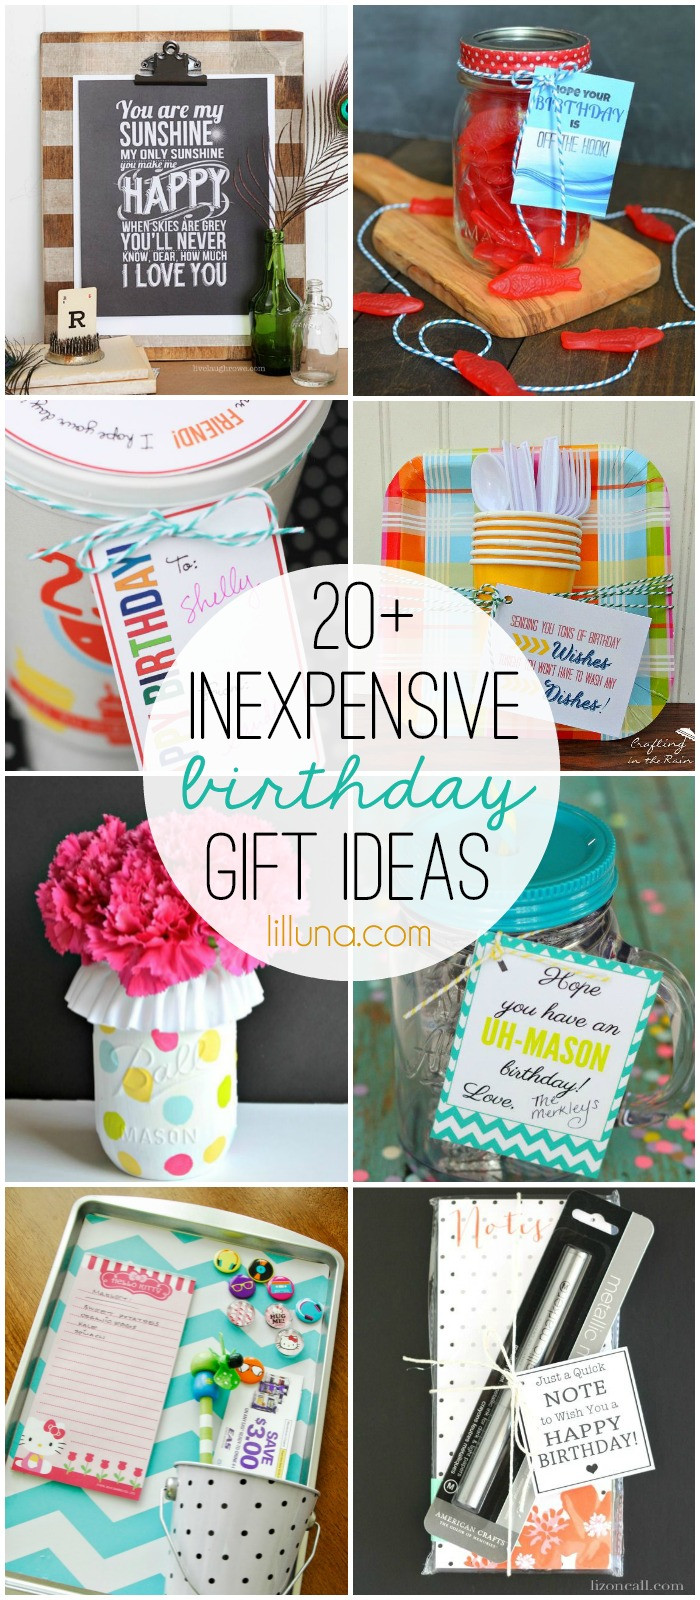 Best ideas about Good Birthday Ideas . Save or Pin Inexpensive Birthday Gift Ideas Now.